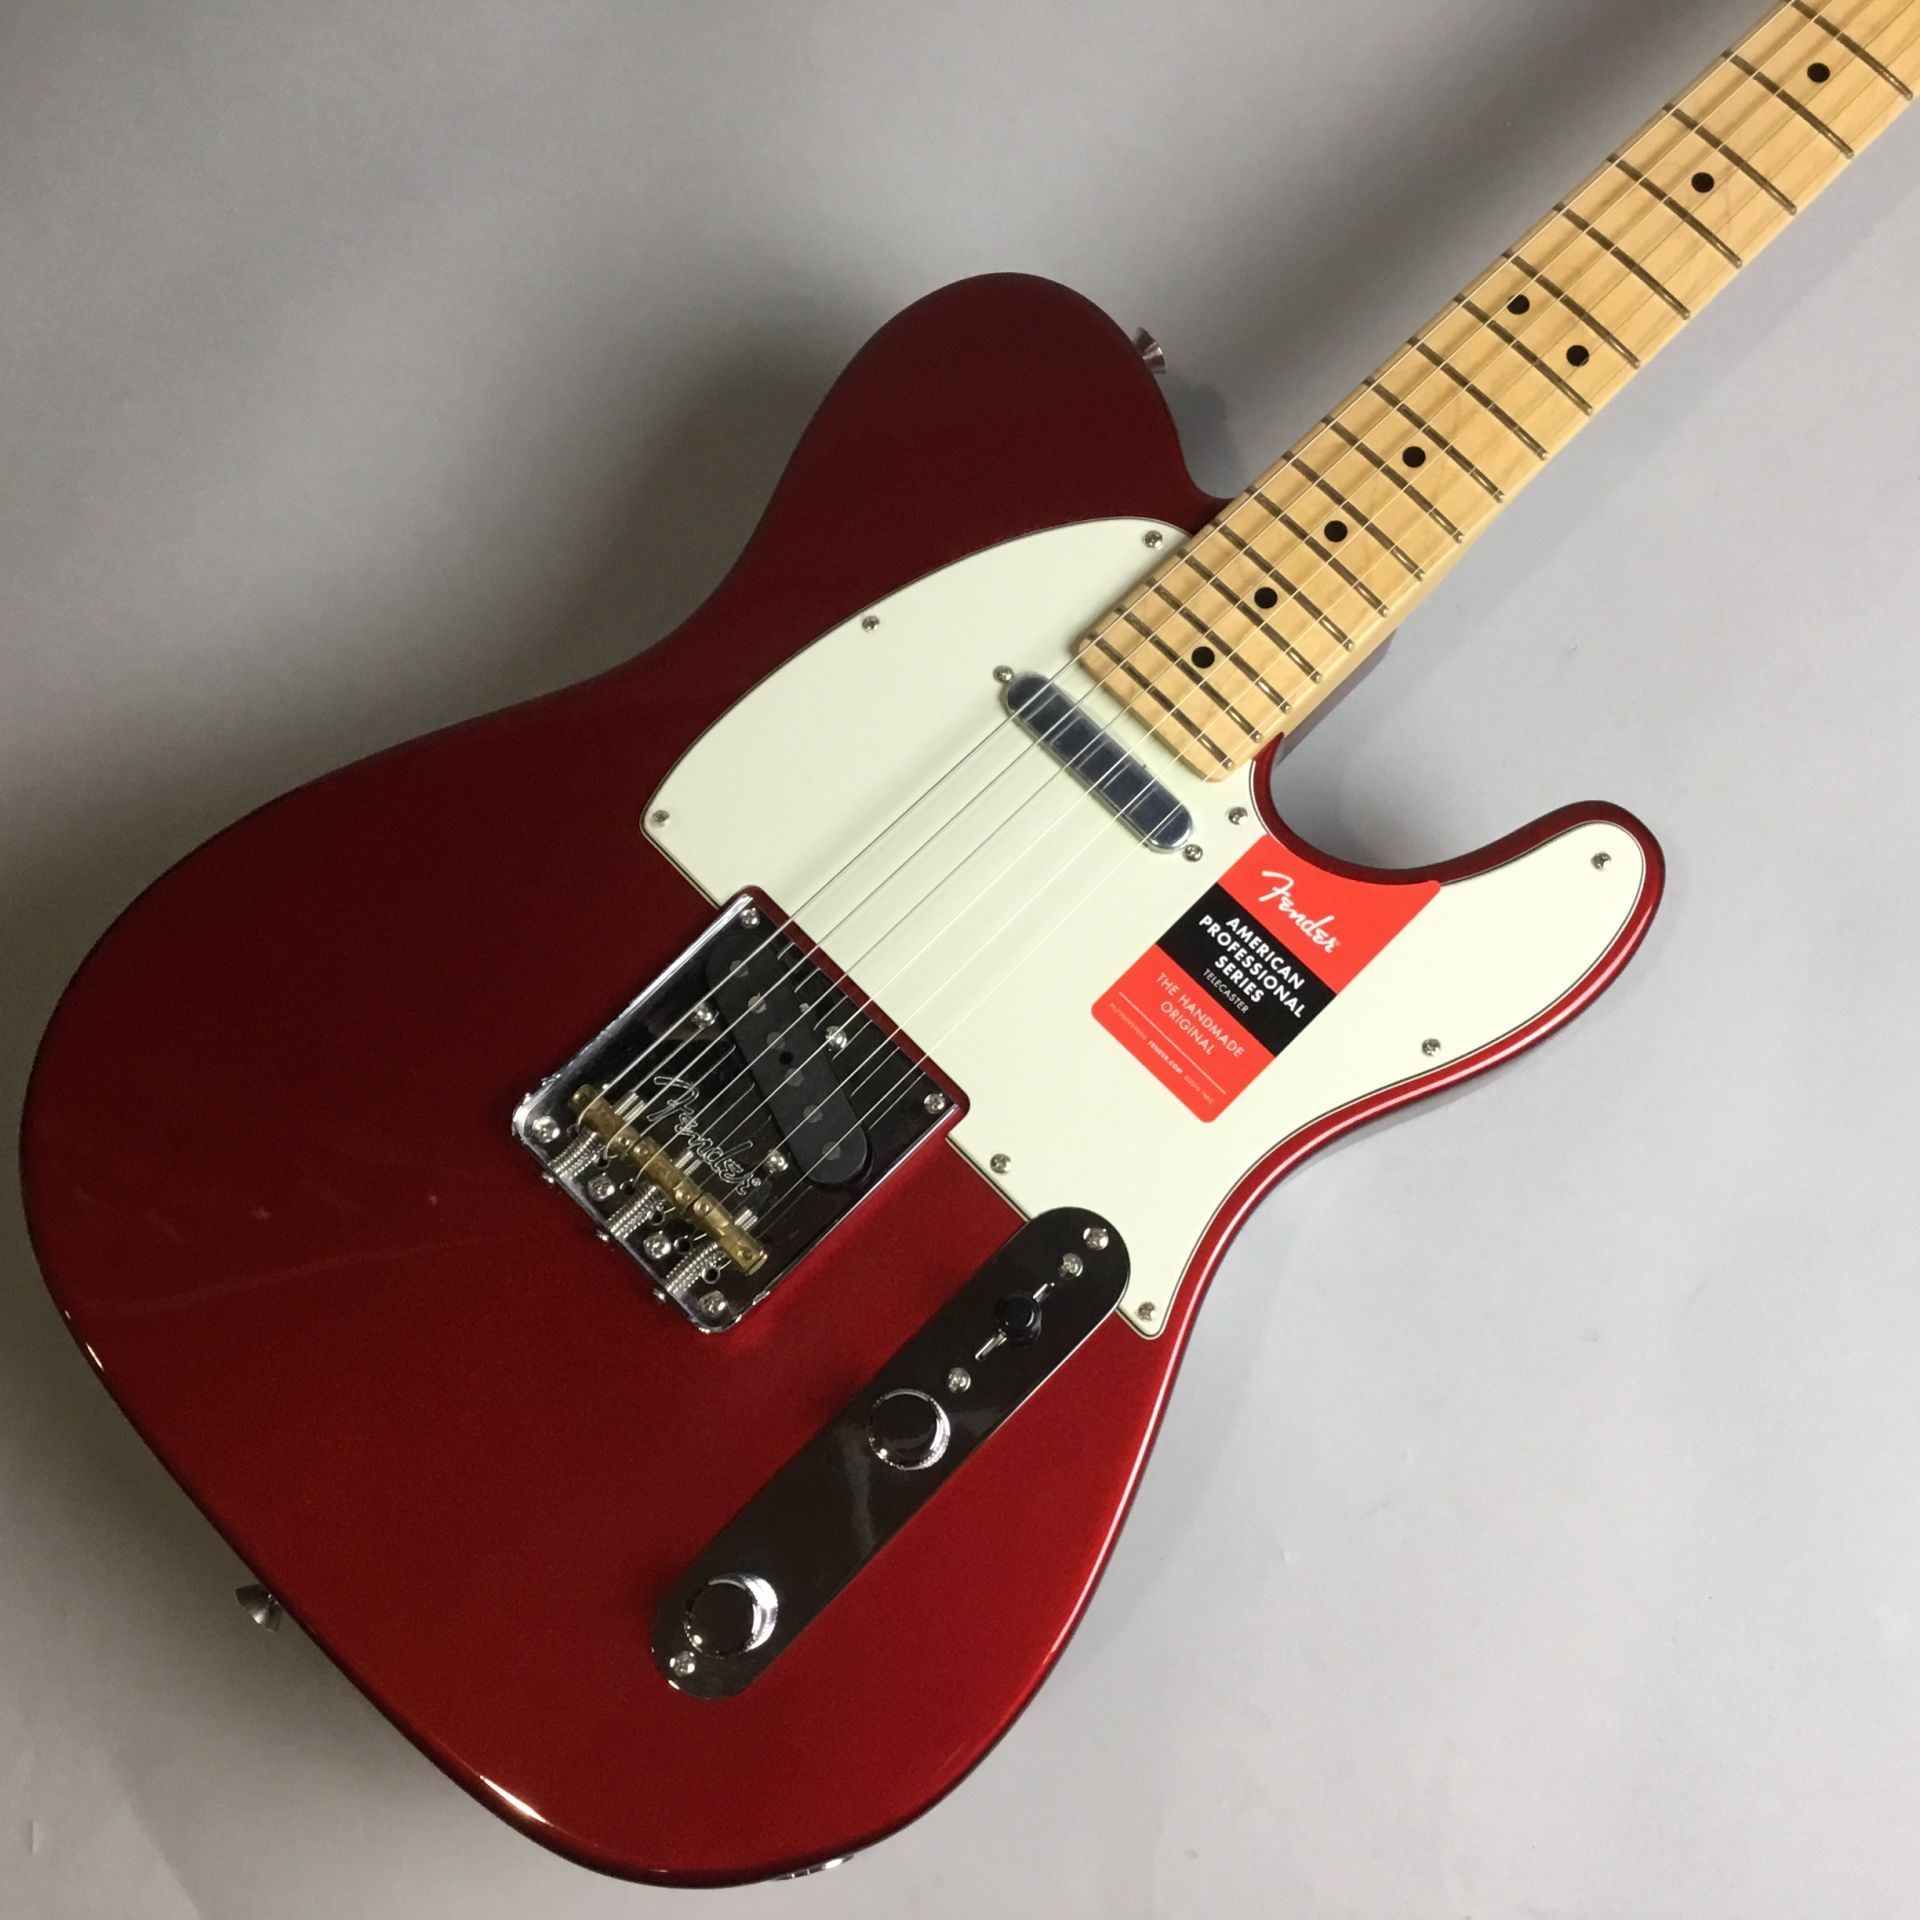 American Professional Telecaster Rosewood Candy Apple Redのボディトップ-アップ画像